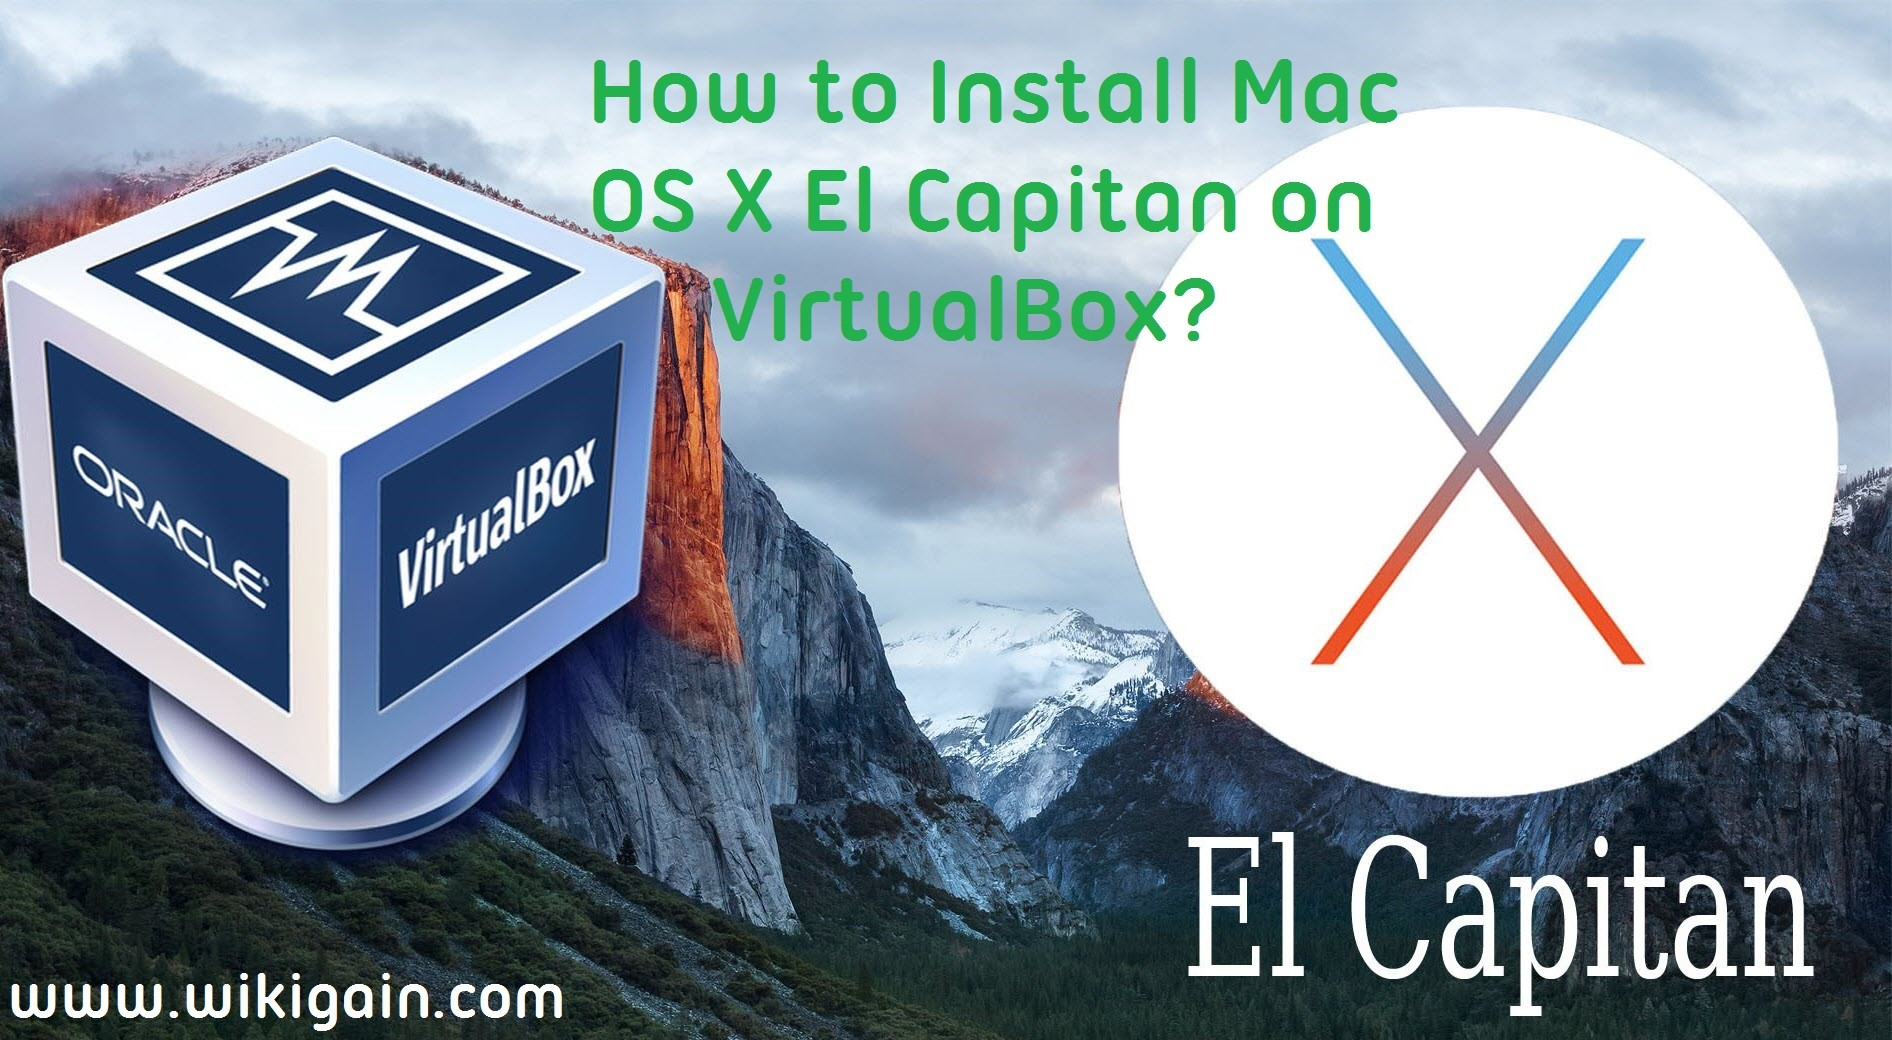 How to Install Mac OS X